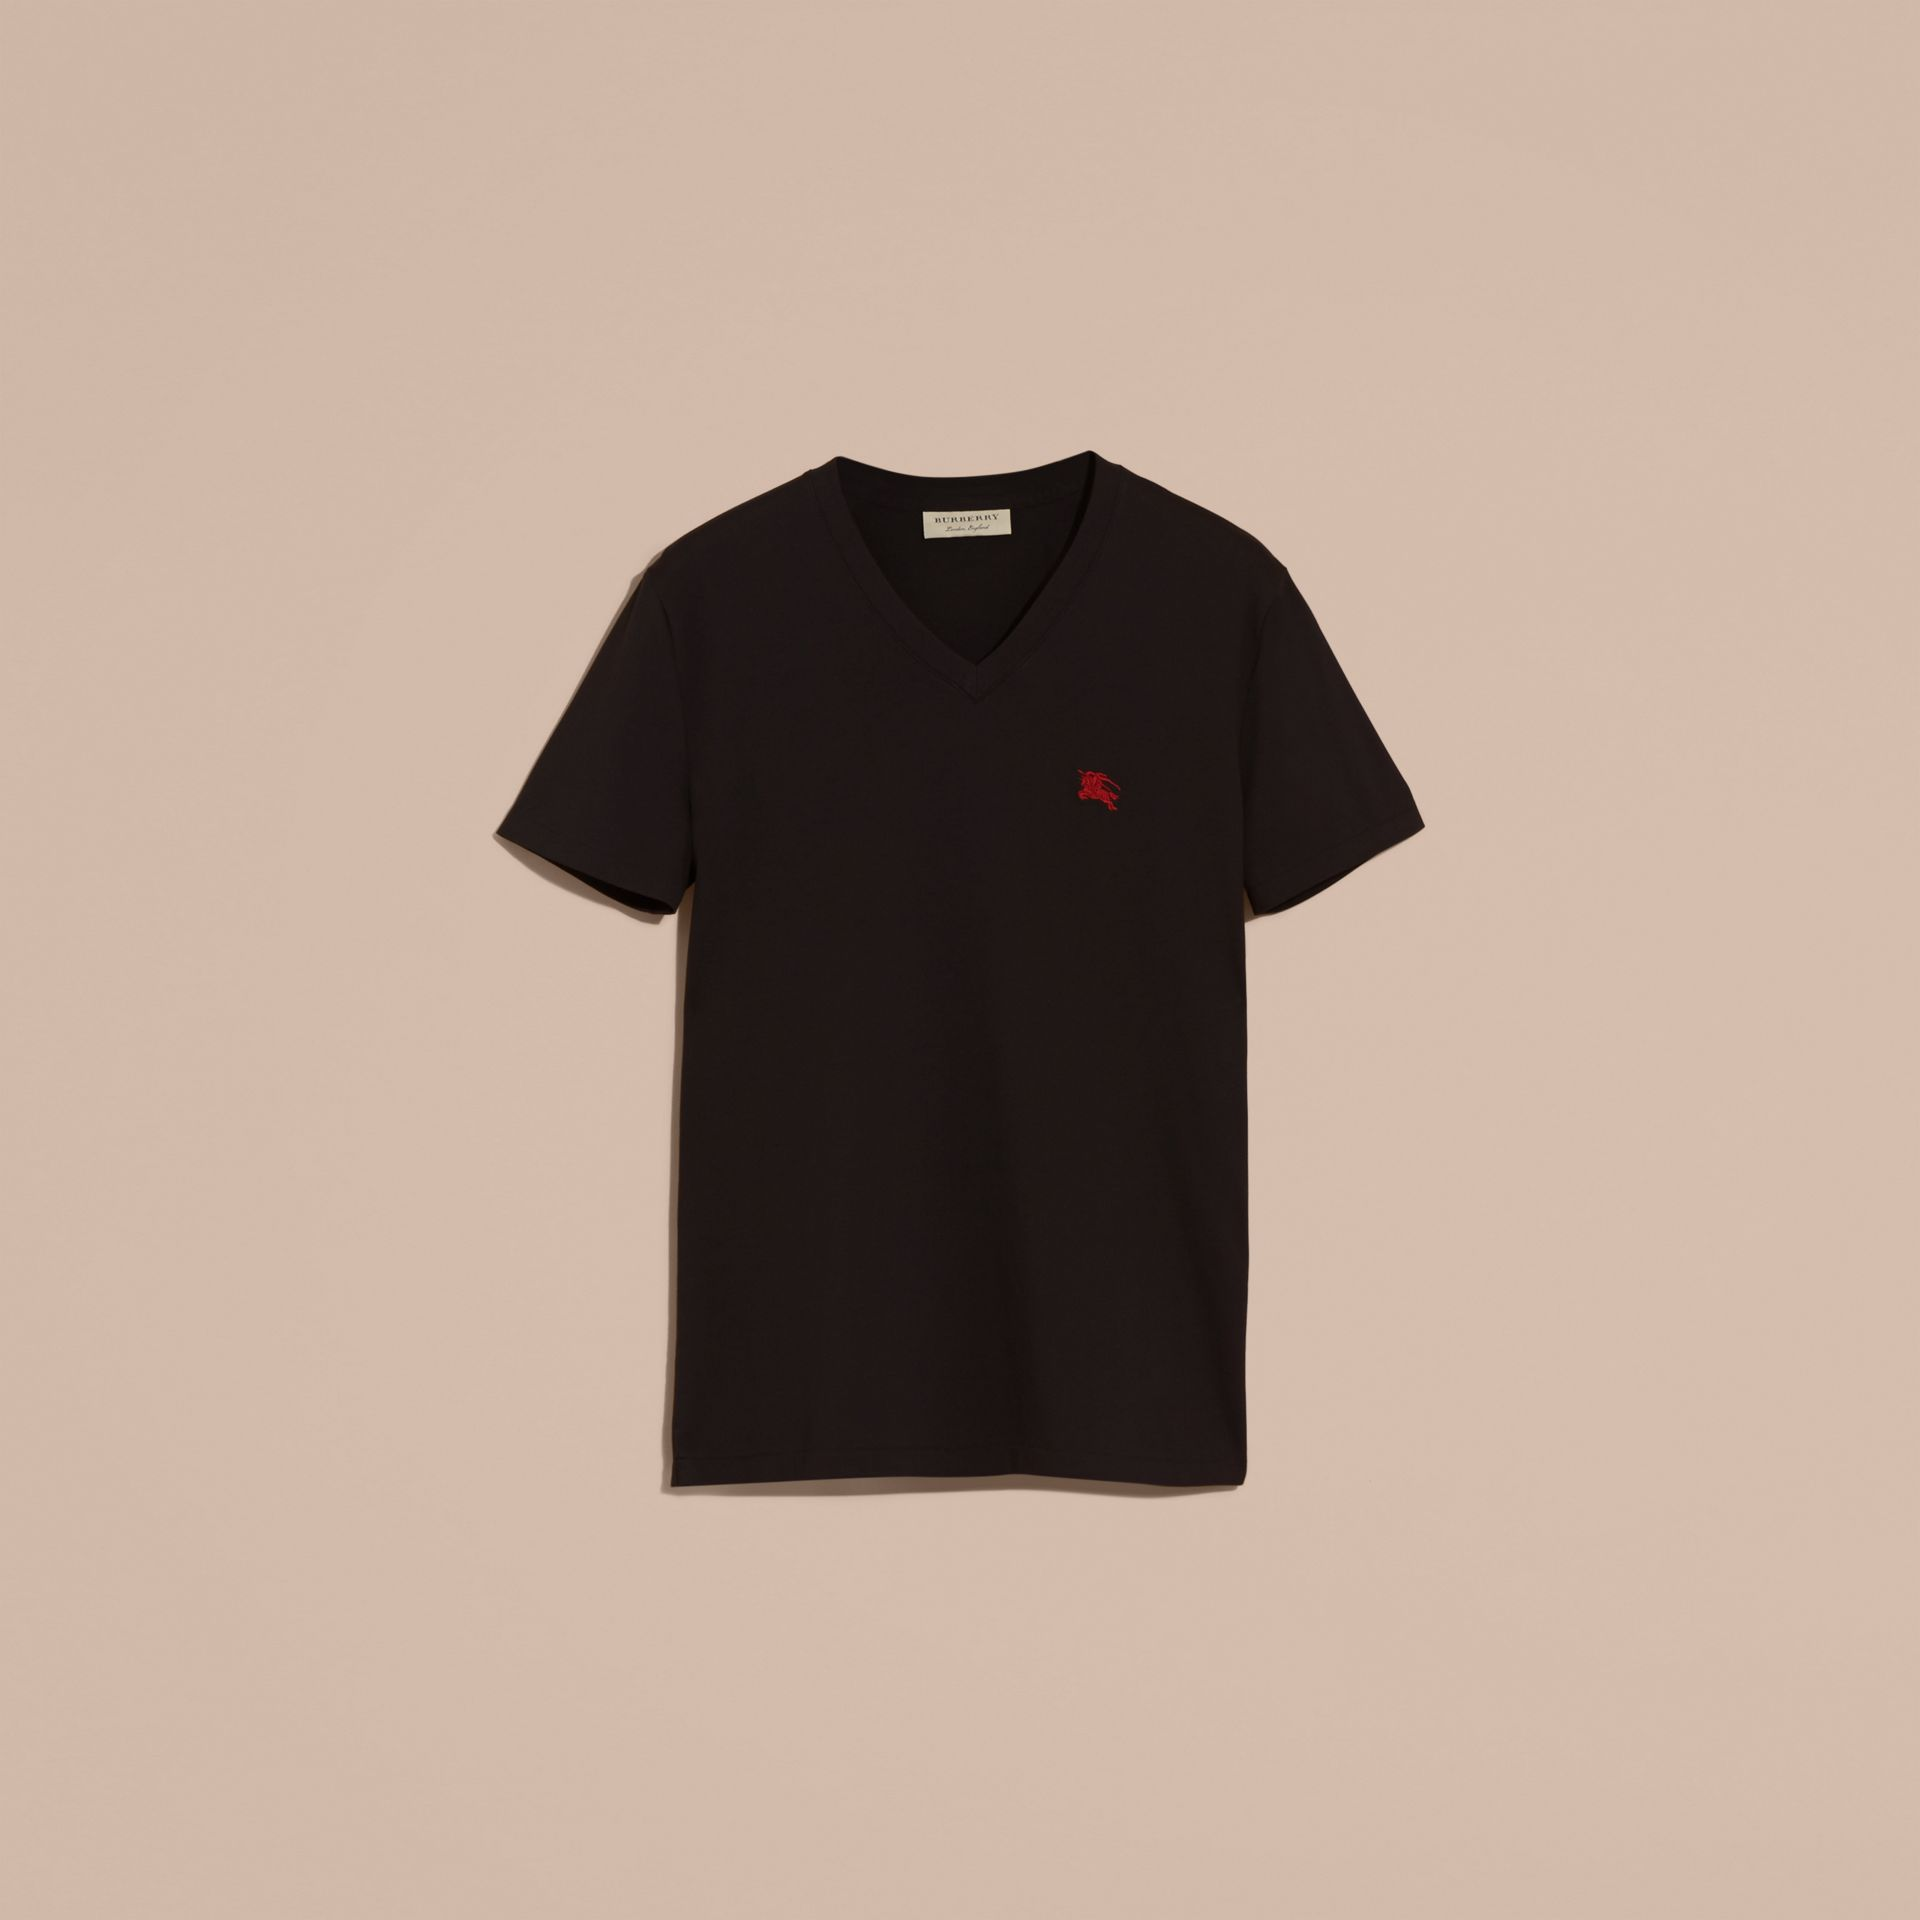 Cotton V-neck T-shirt in Black - Men | Burberry United Kingdom - gallery image 3